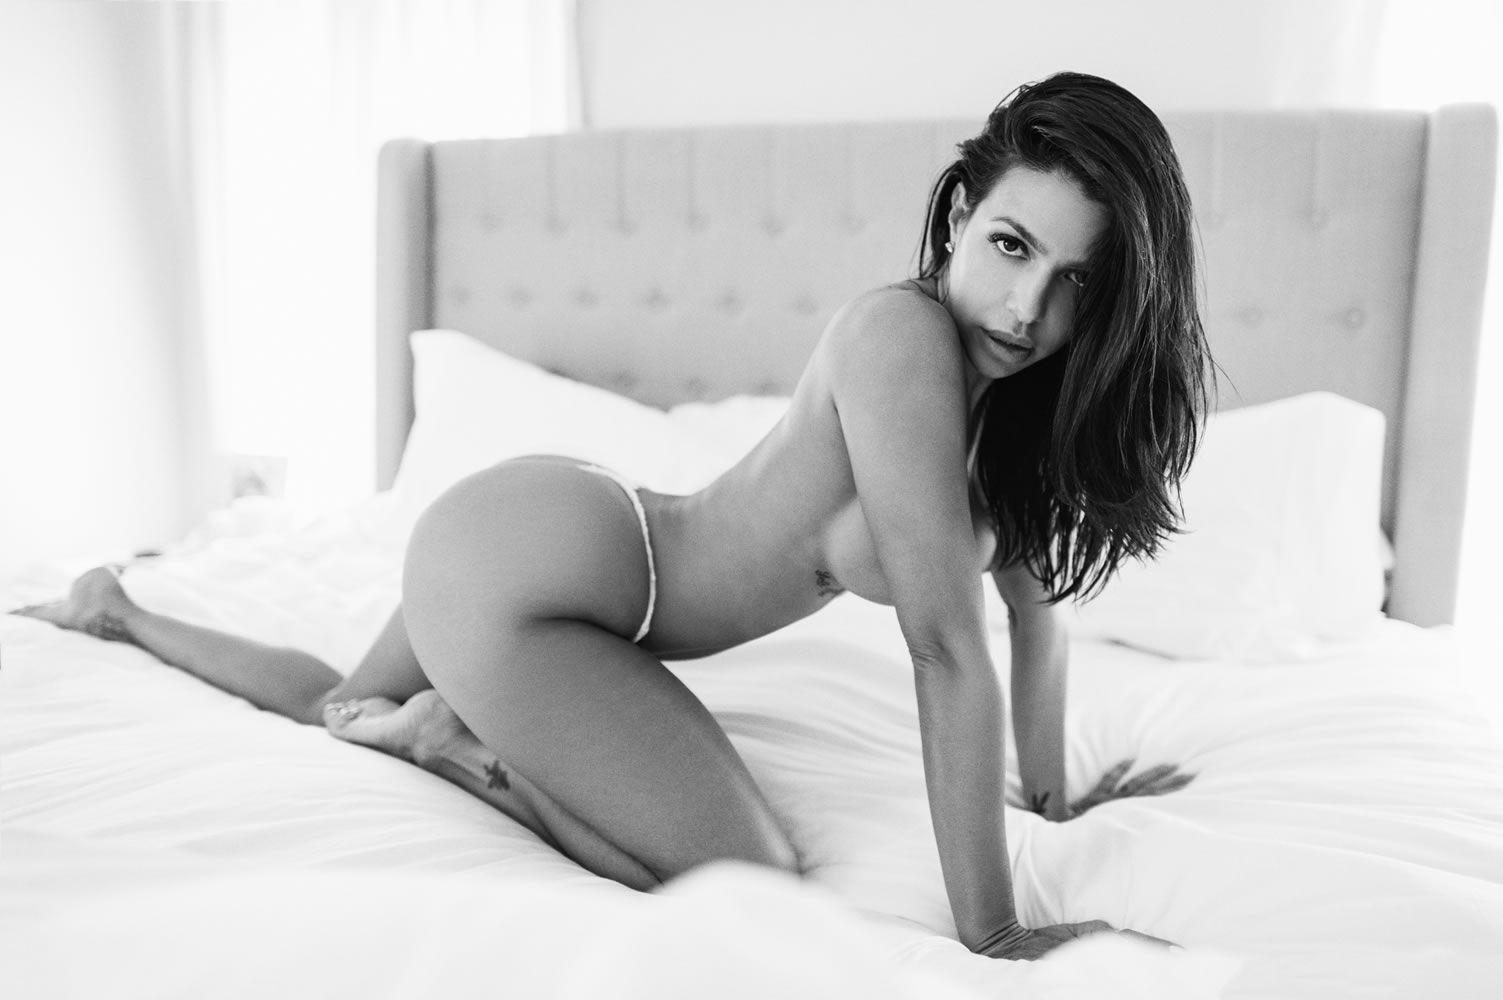 Vida guerra black and white pics #5